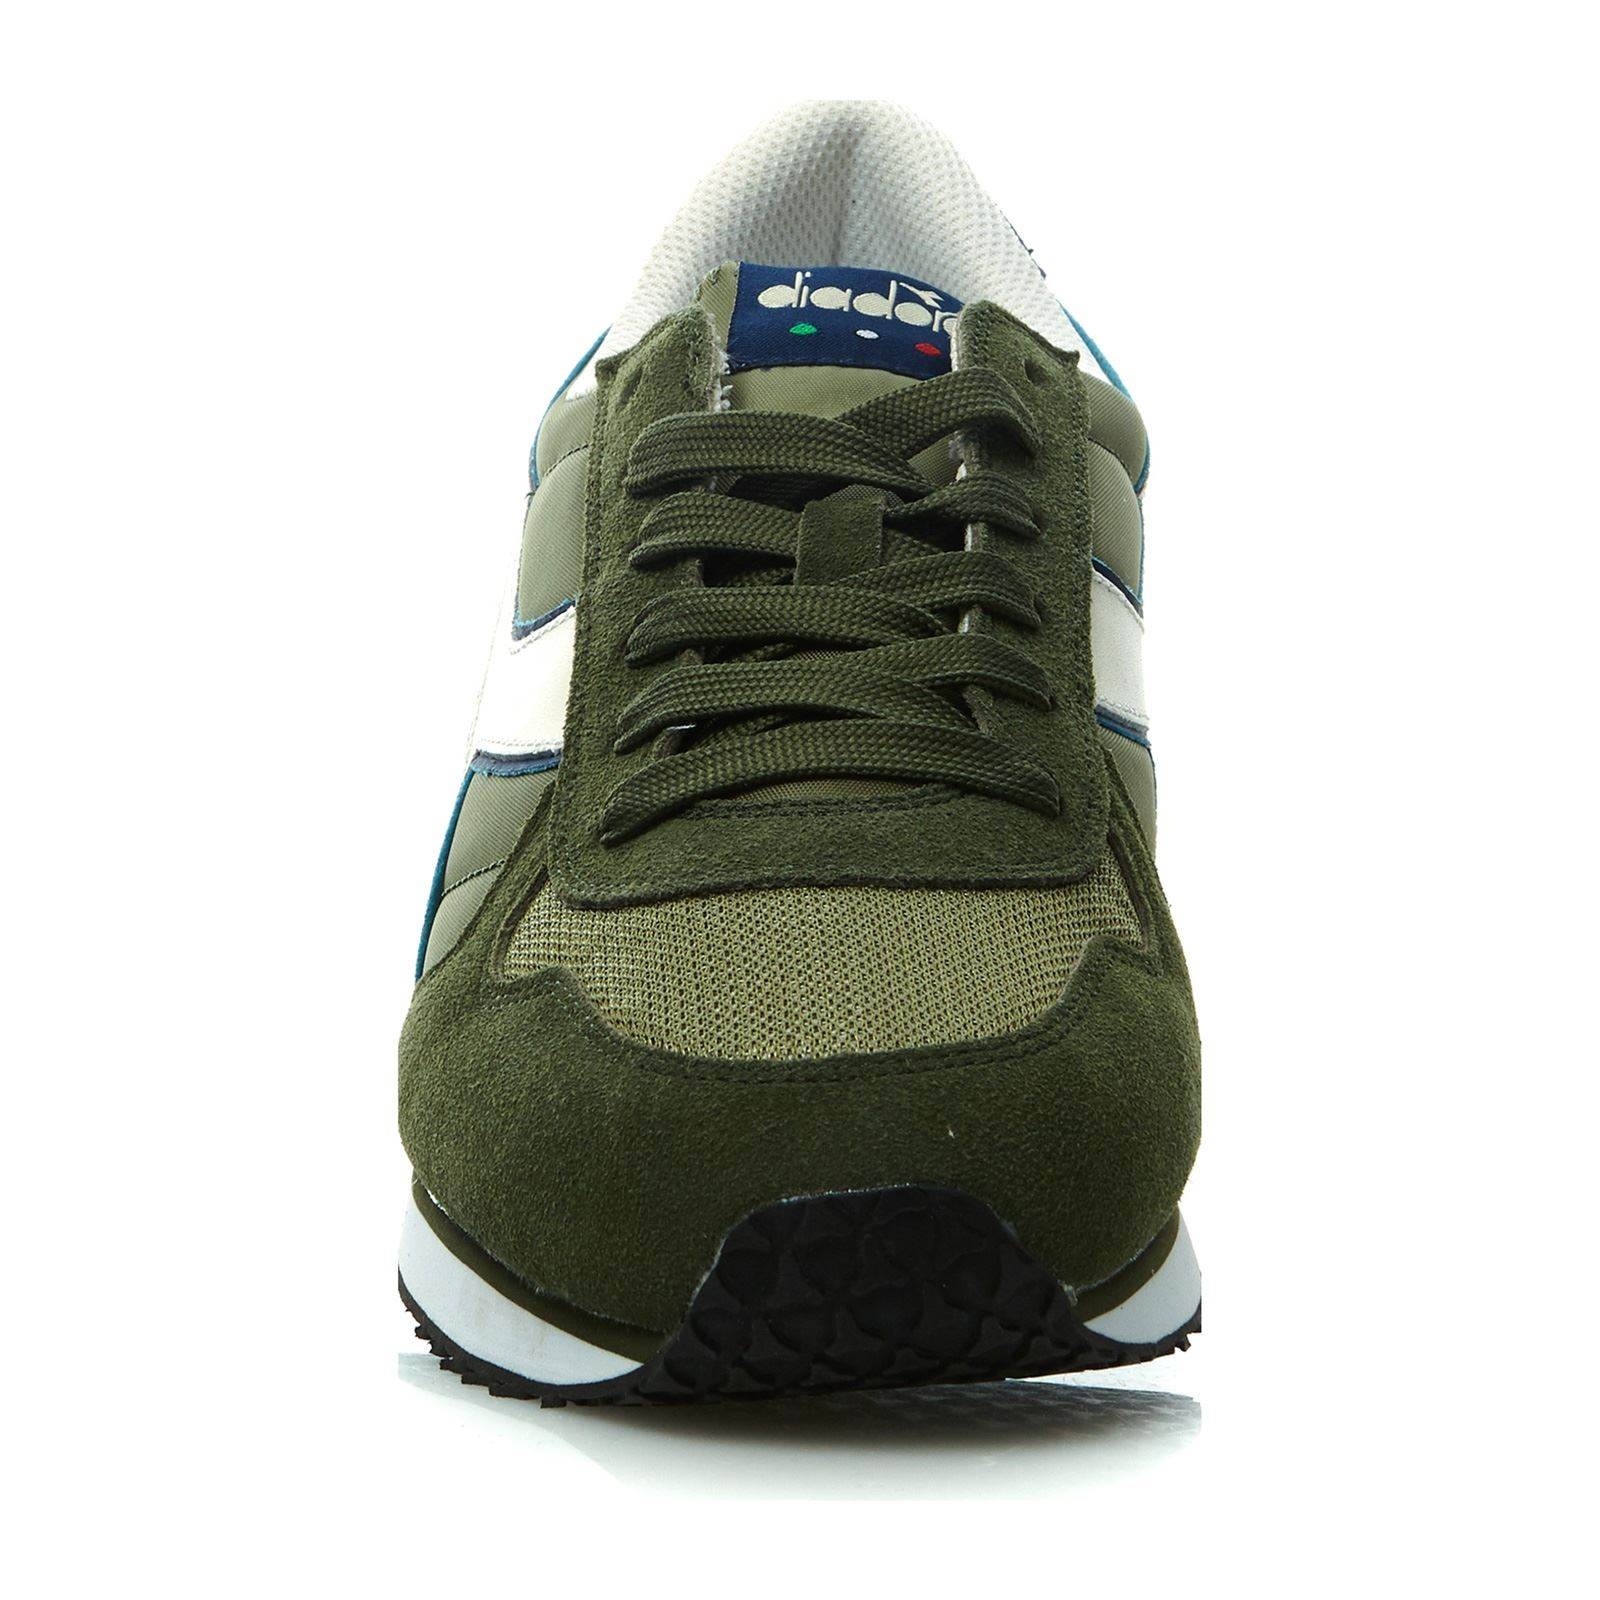 Olive Diadora Baskets Diadora Diadora Olive Baskets Brandalley Baskets Brandalley Olive 1xEqTwBn